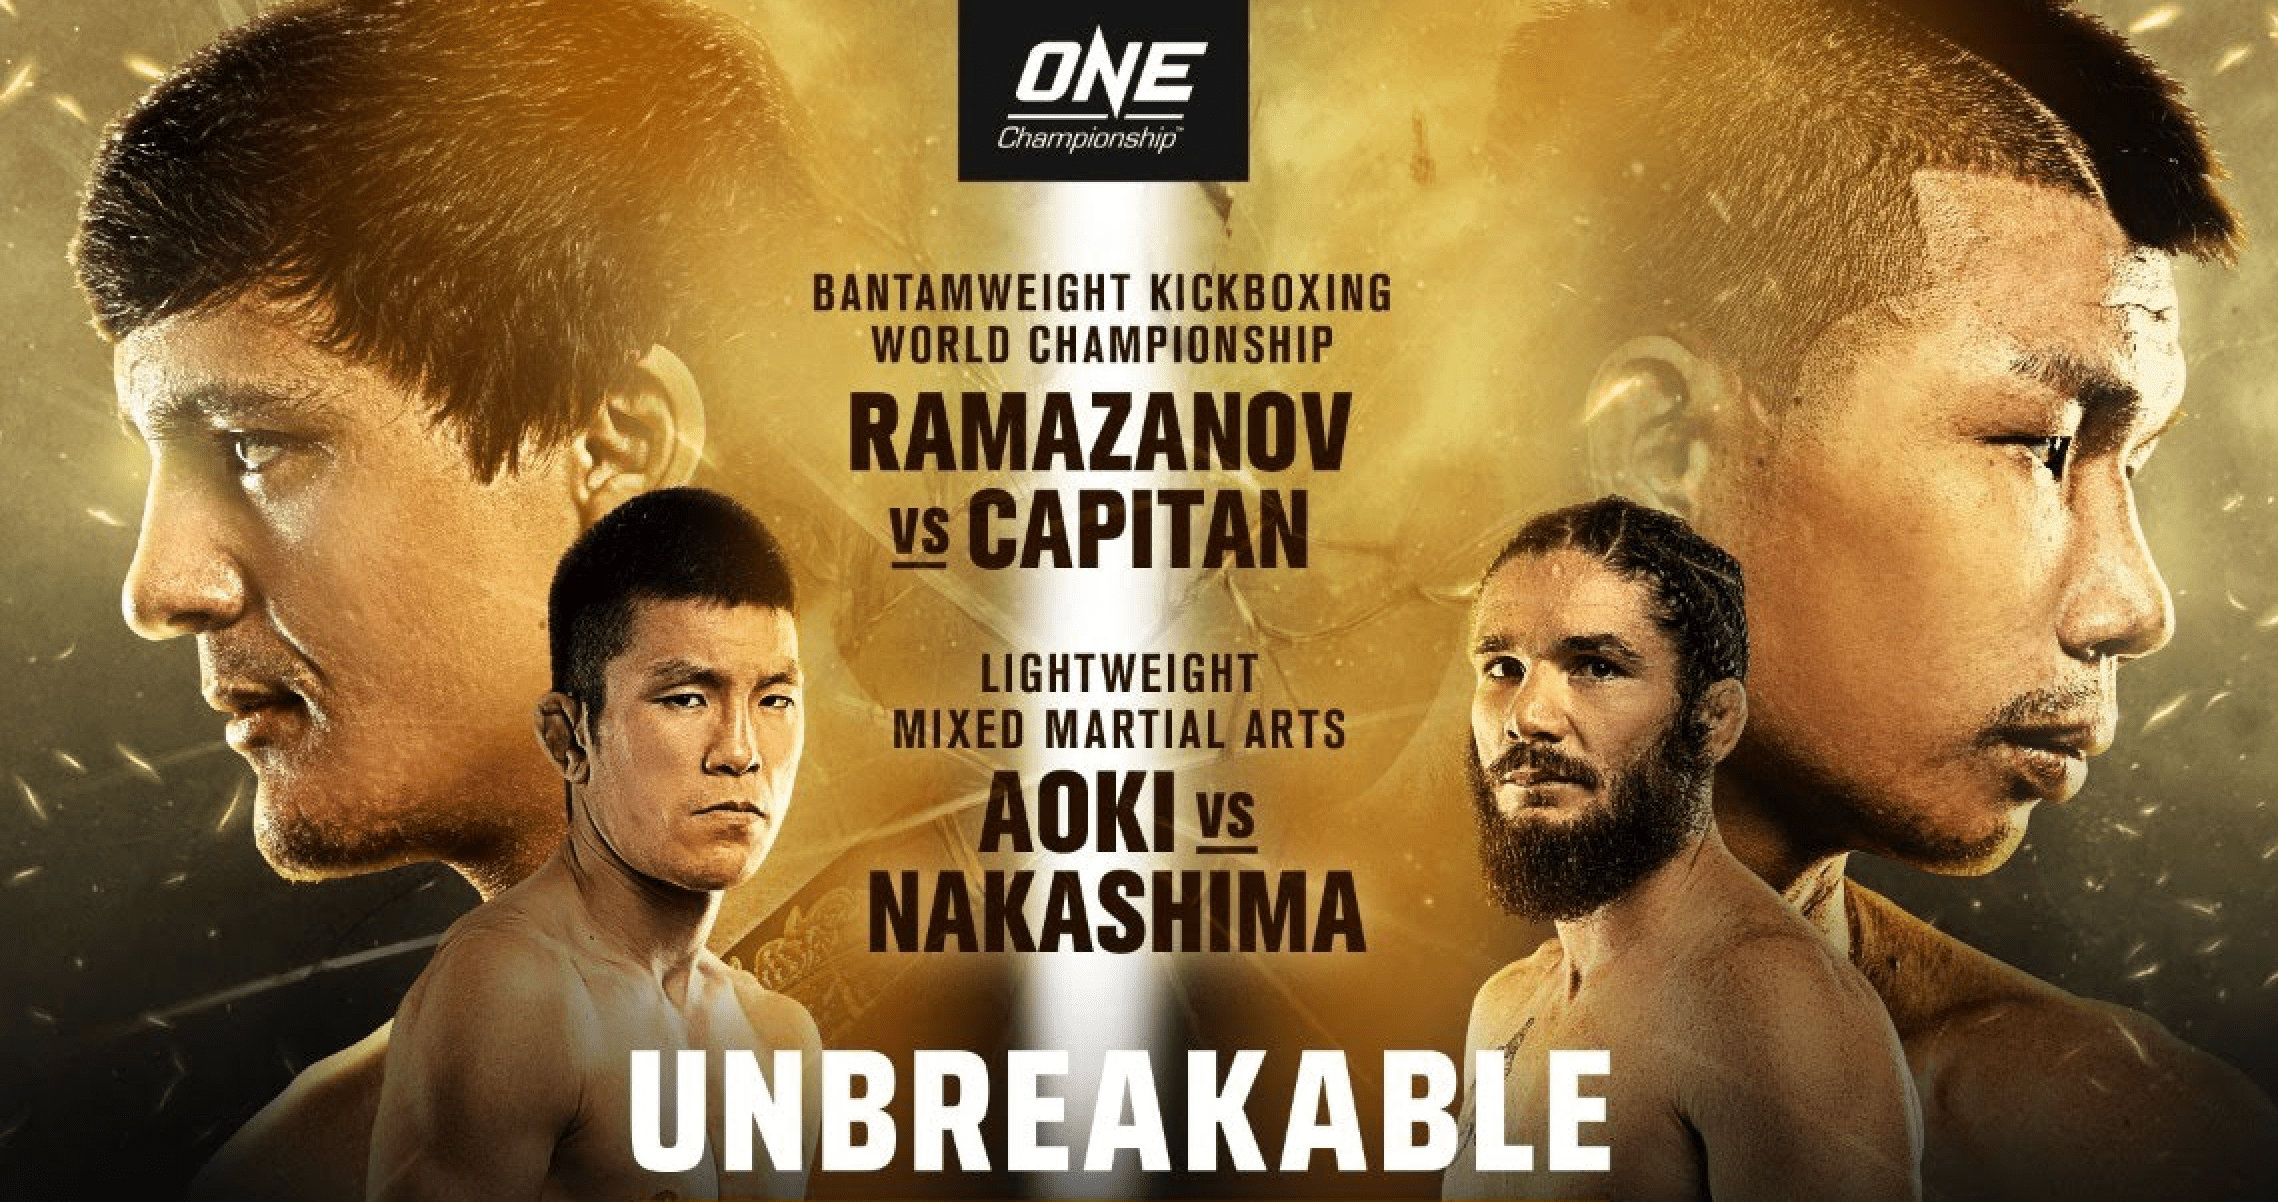 ONE Champion: Unbreakable results, Ramazanov vs Capitan, Aoki vs Nakashima